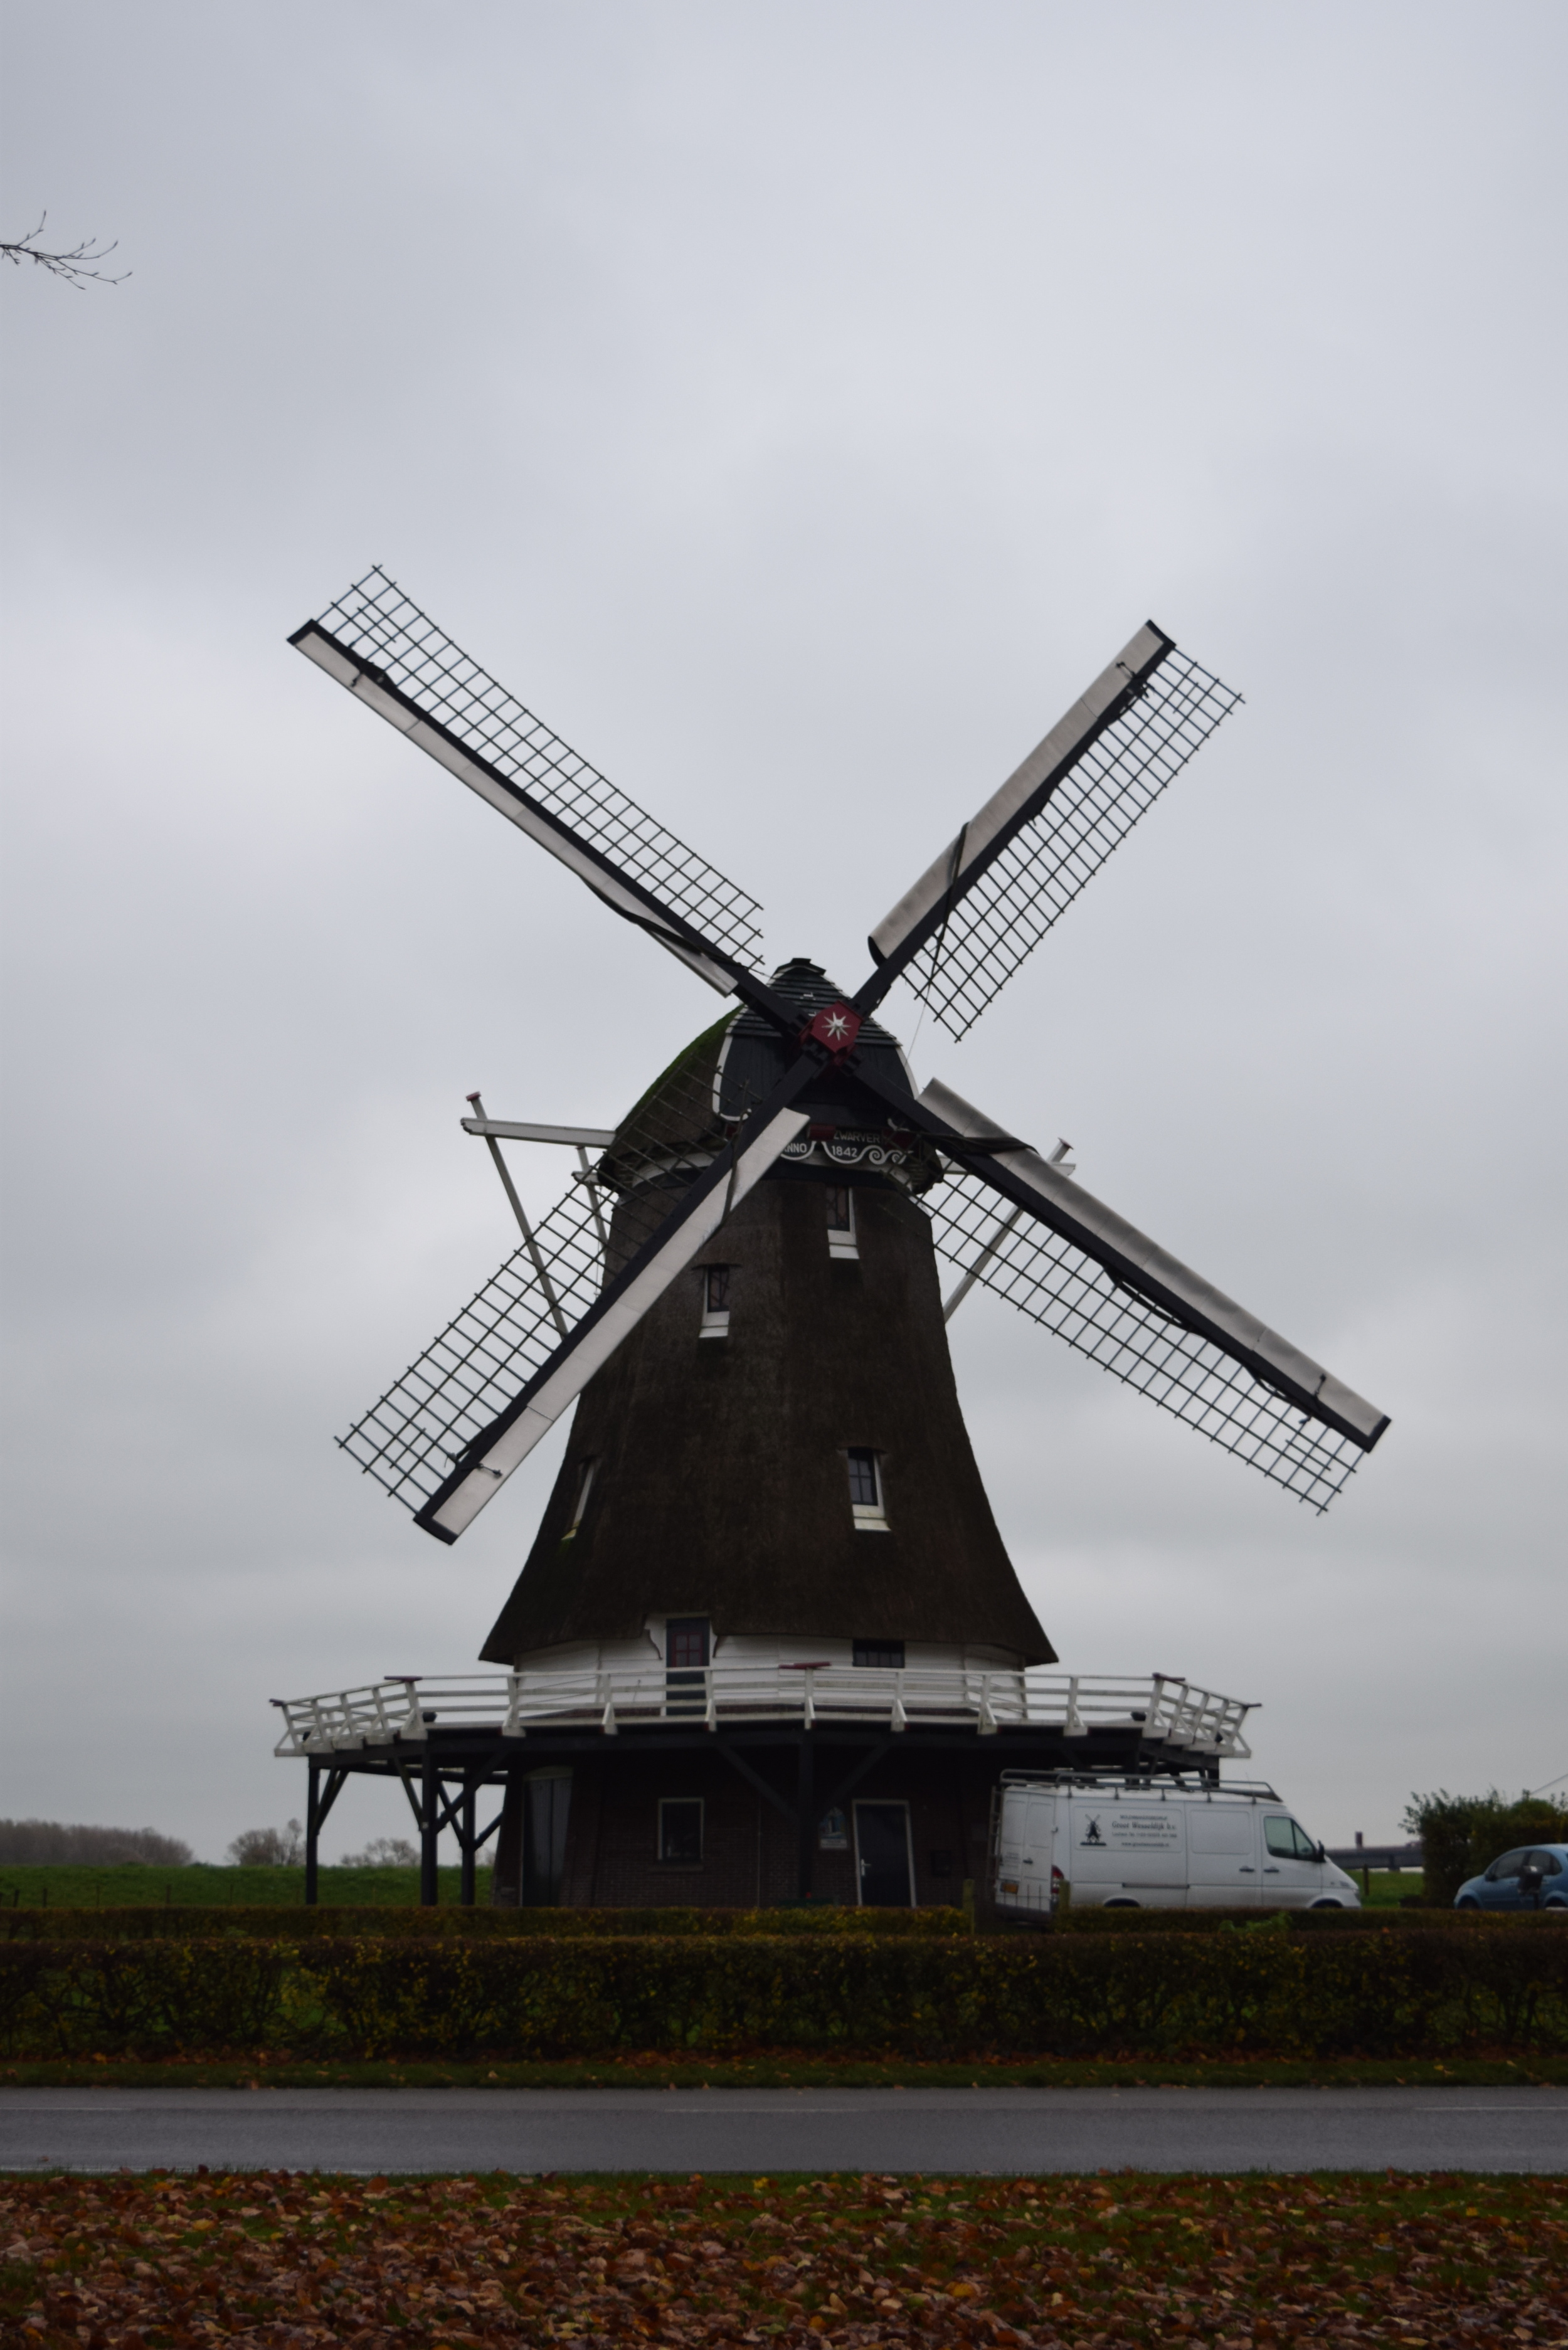 It's not a serious post about the Netherlands if you omit windmills.